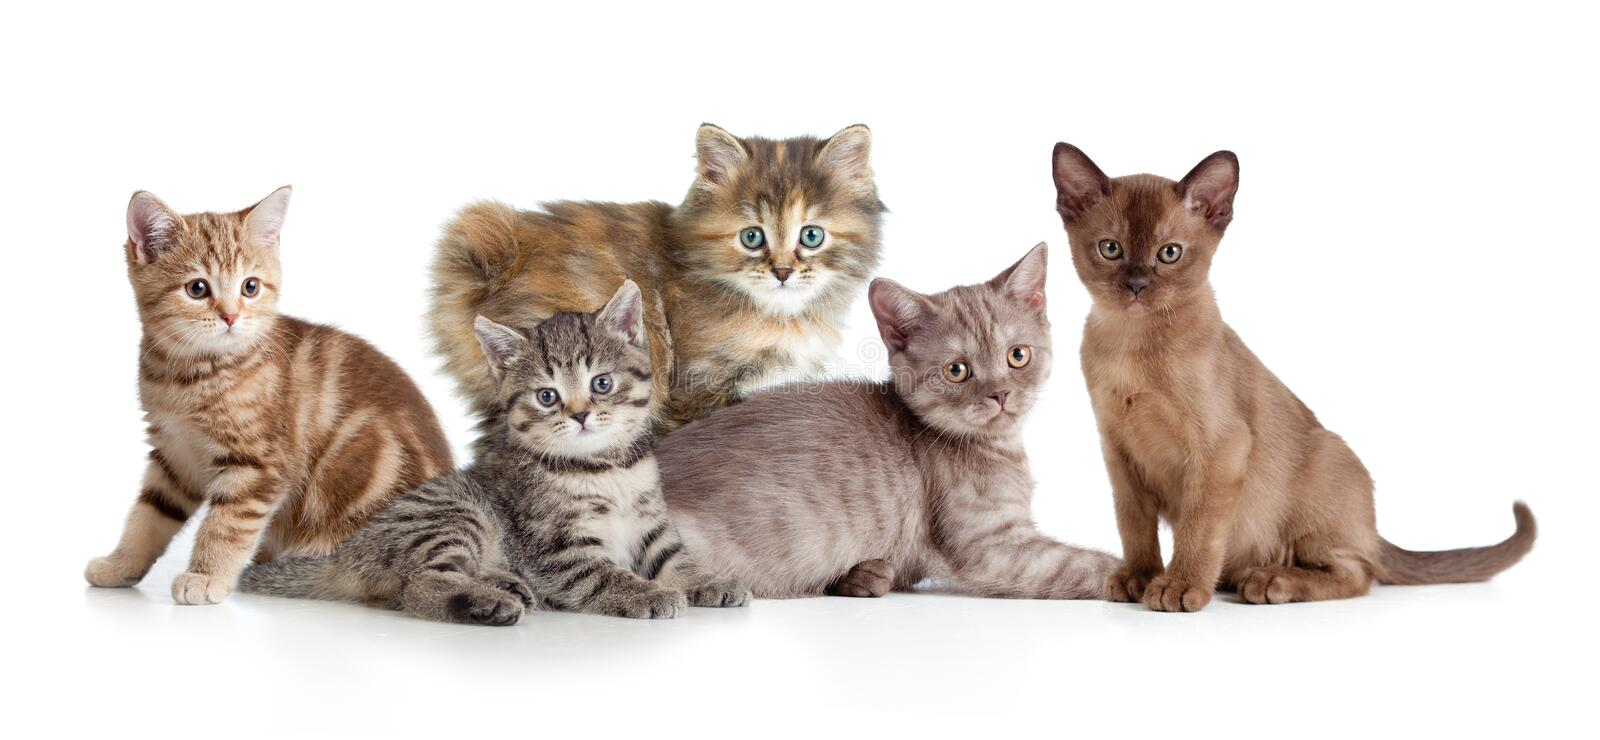 Different kitten or cats group royalty free stock images